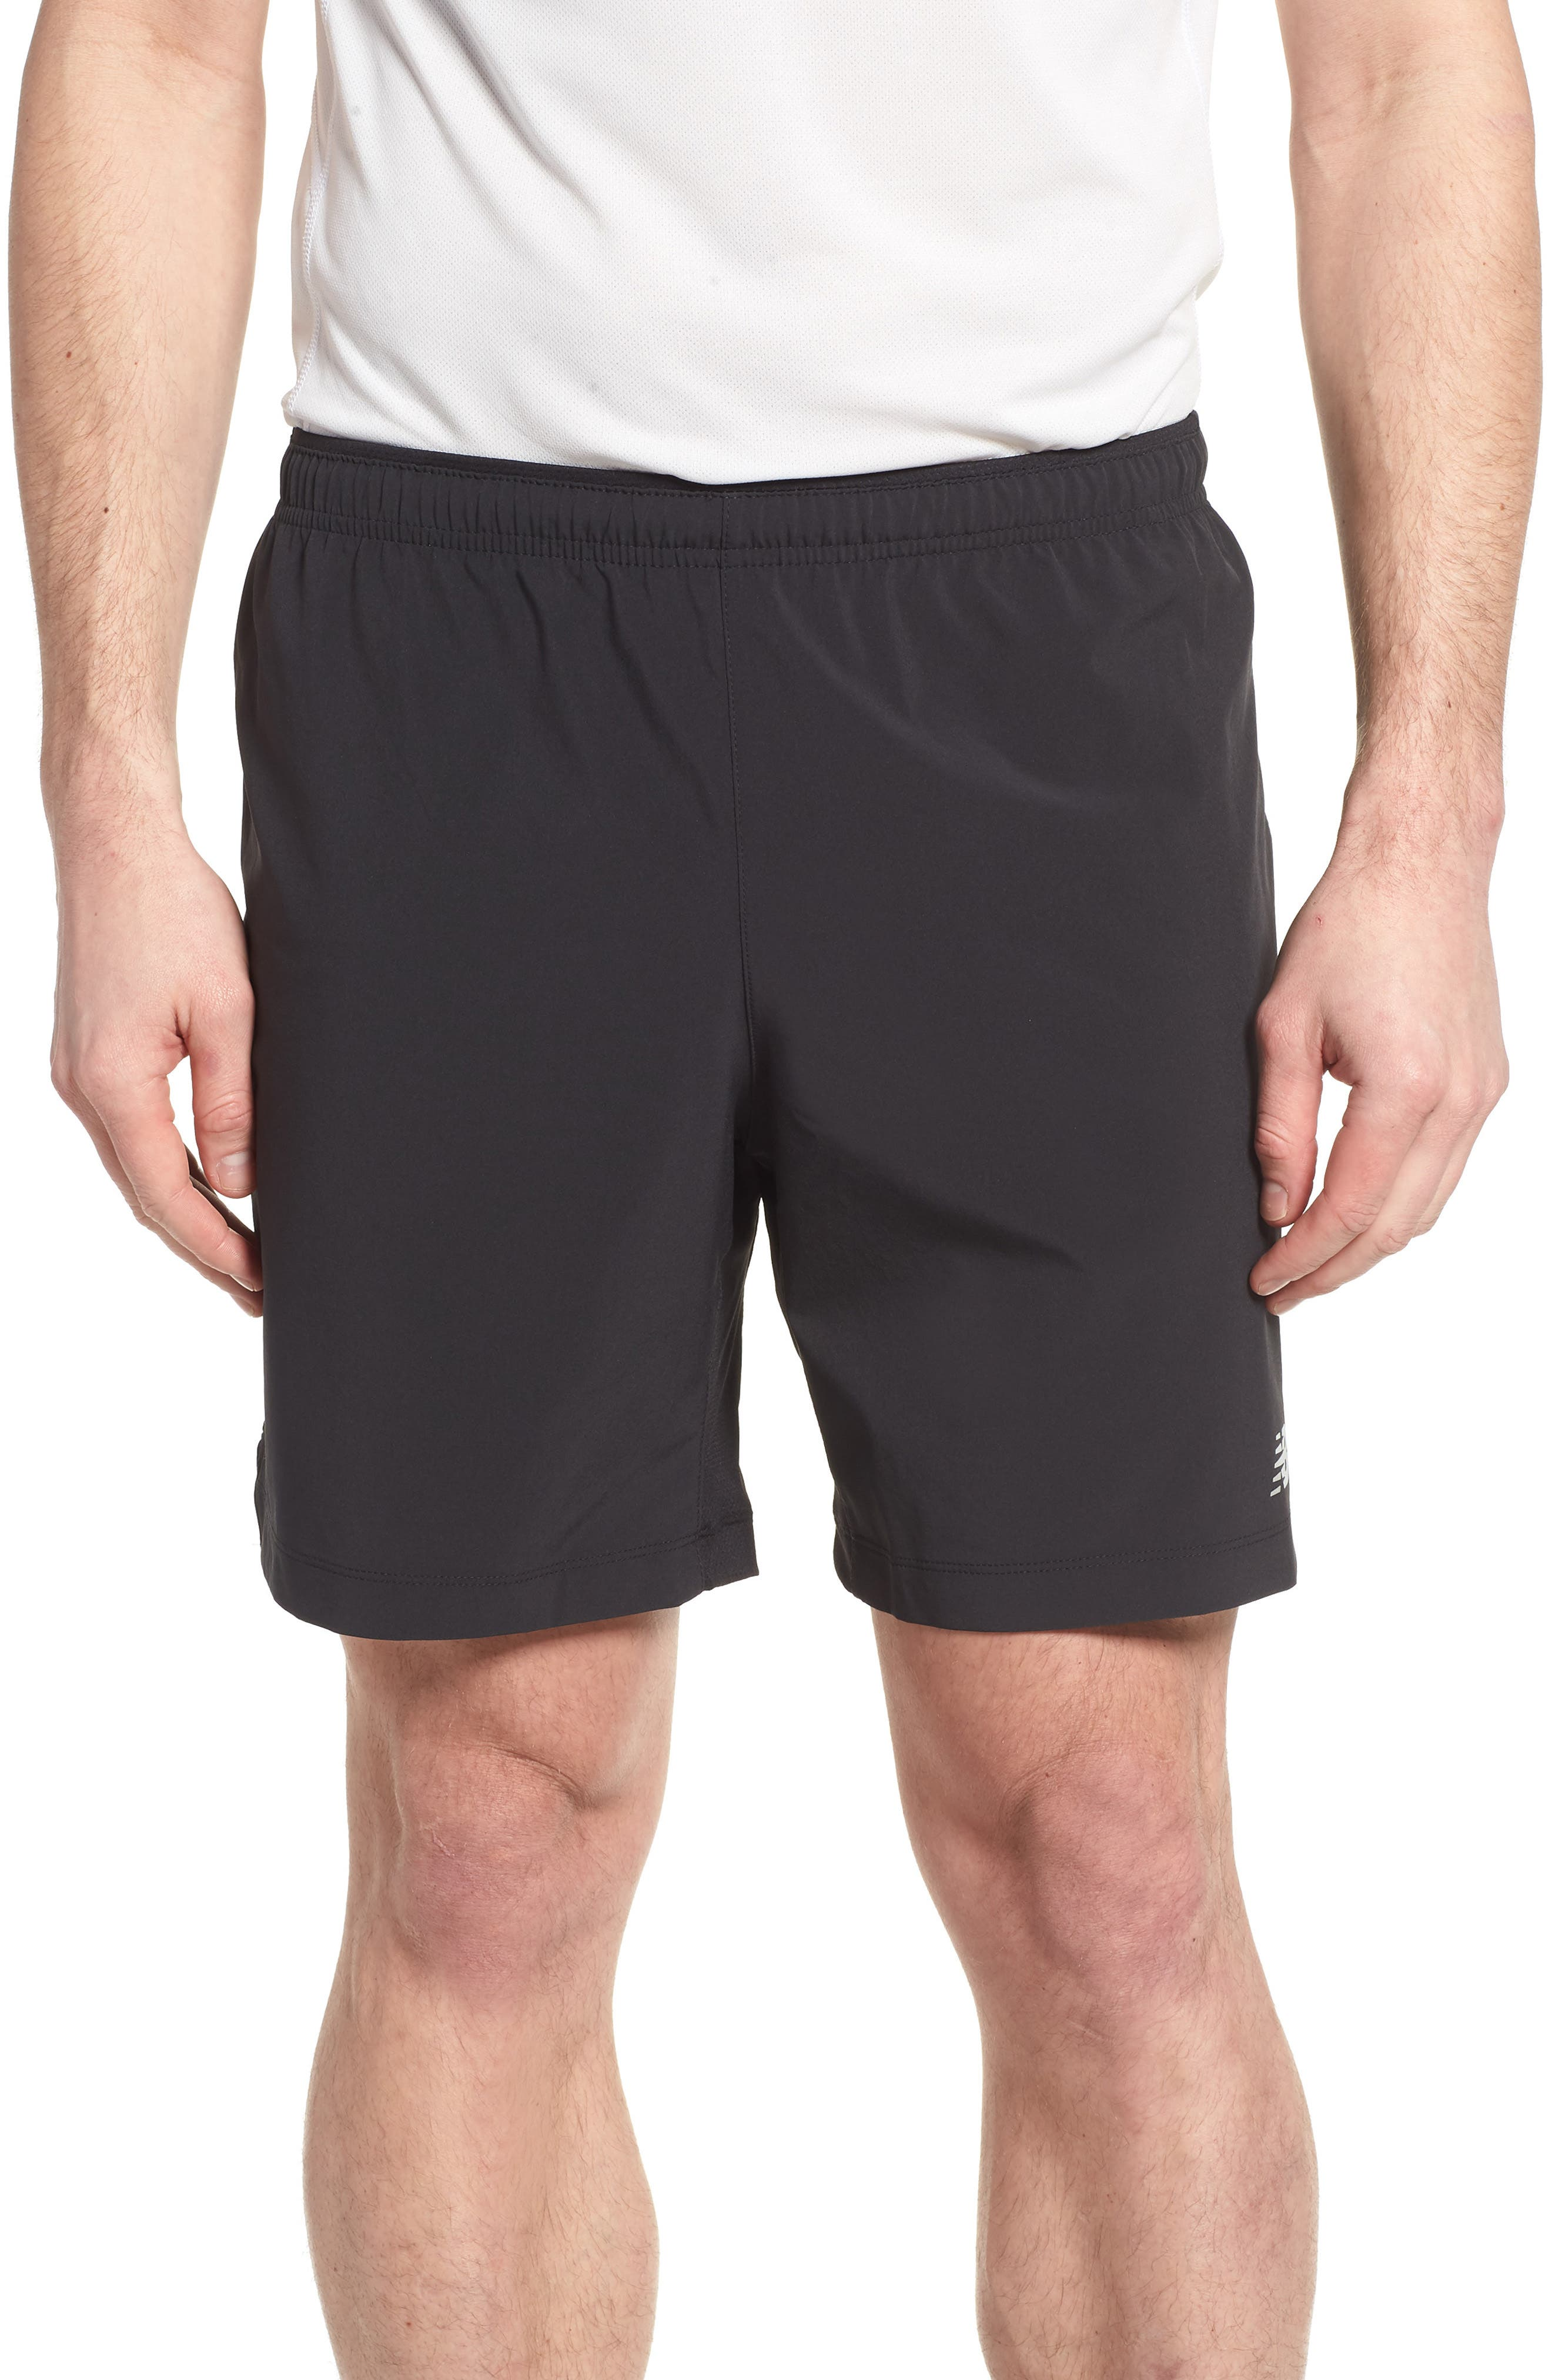 Impact Shorts,                             Main thumbnail 1, color,                             Black